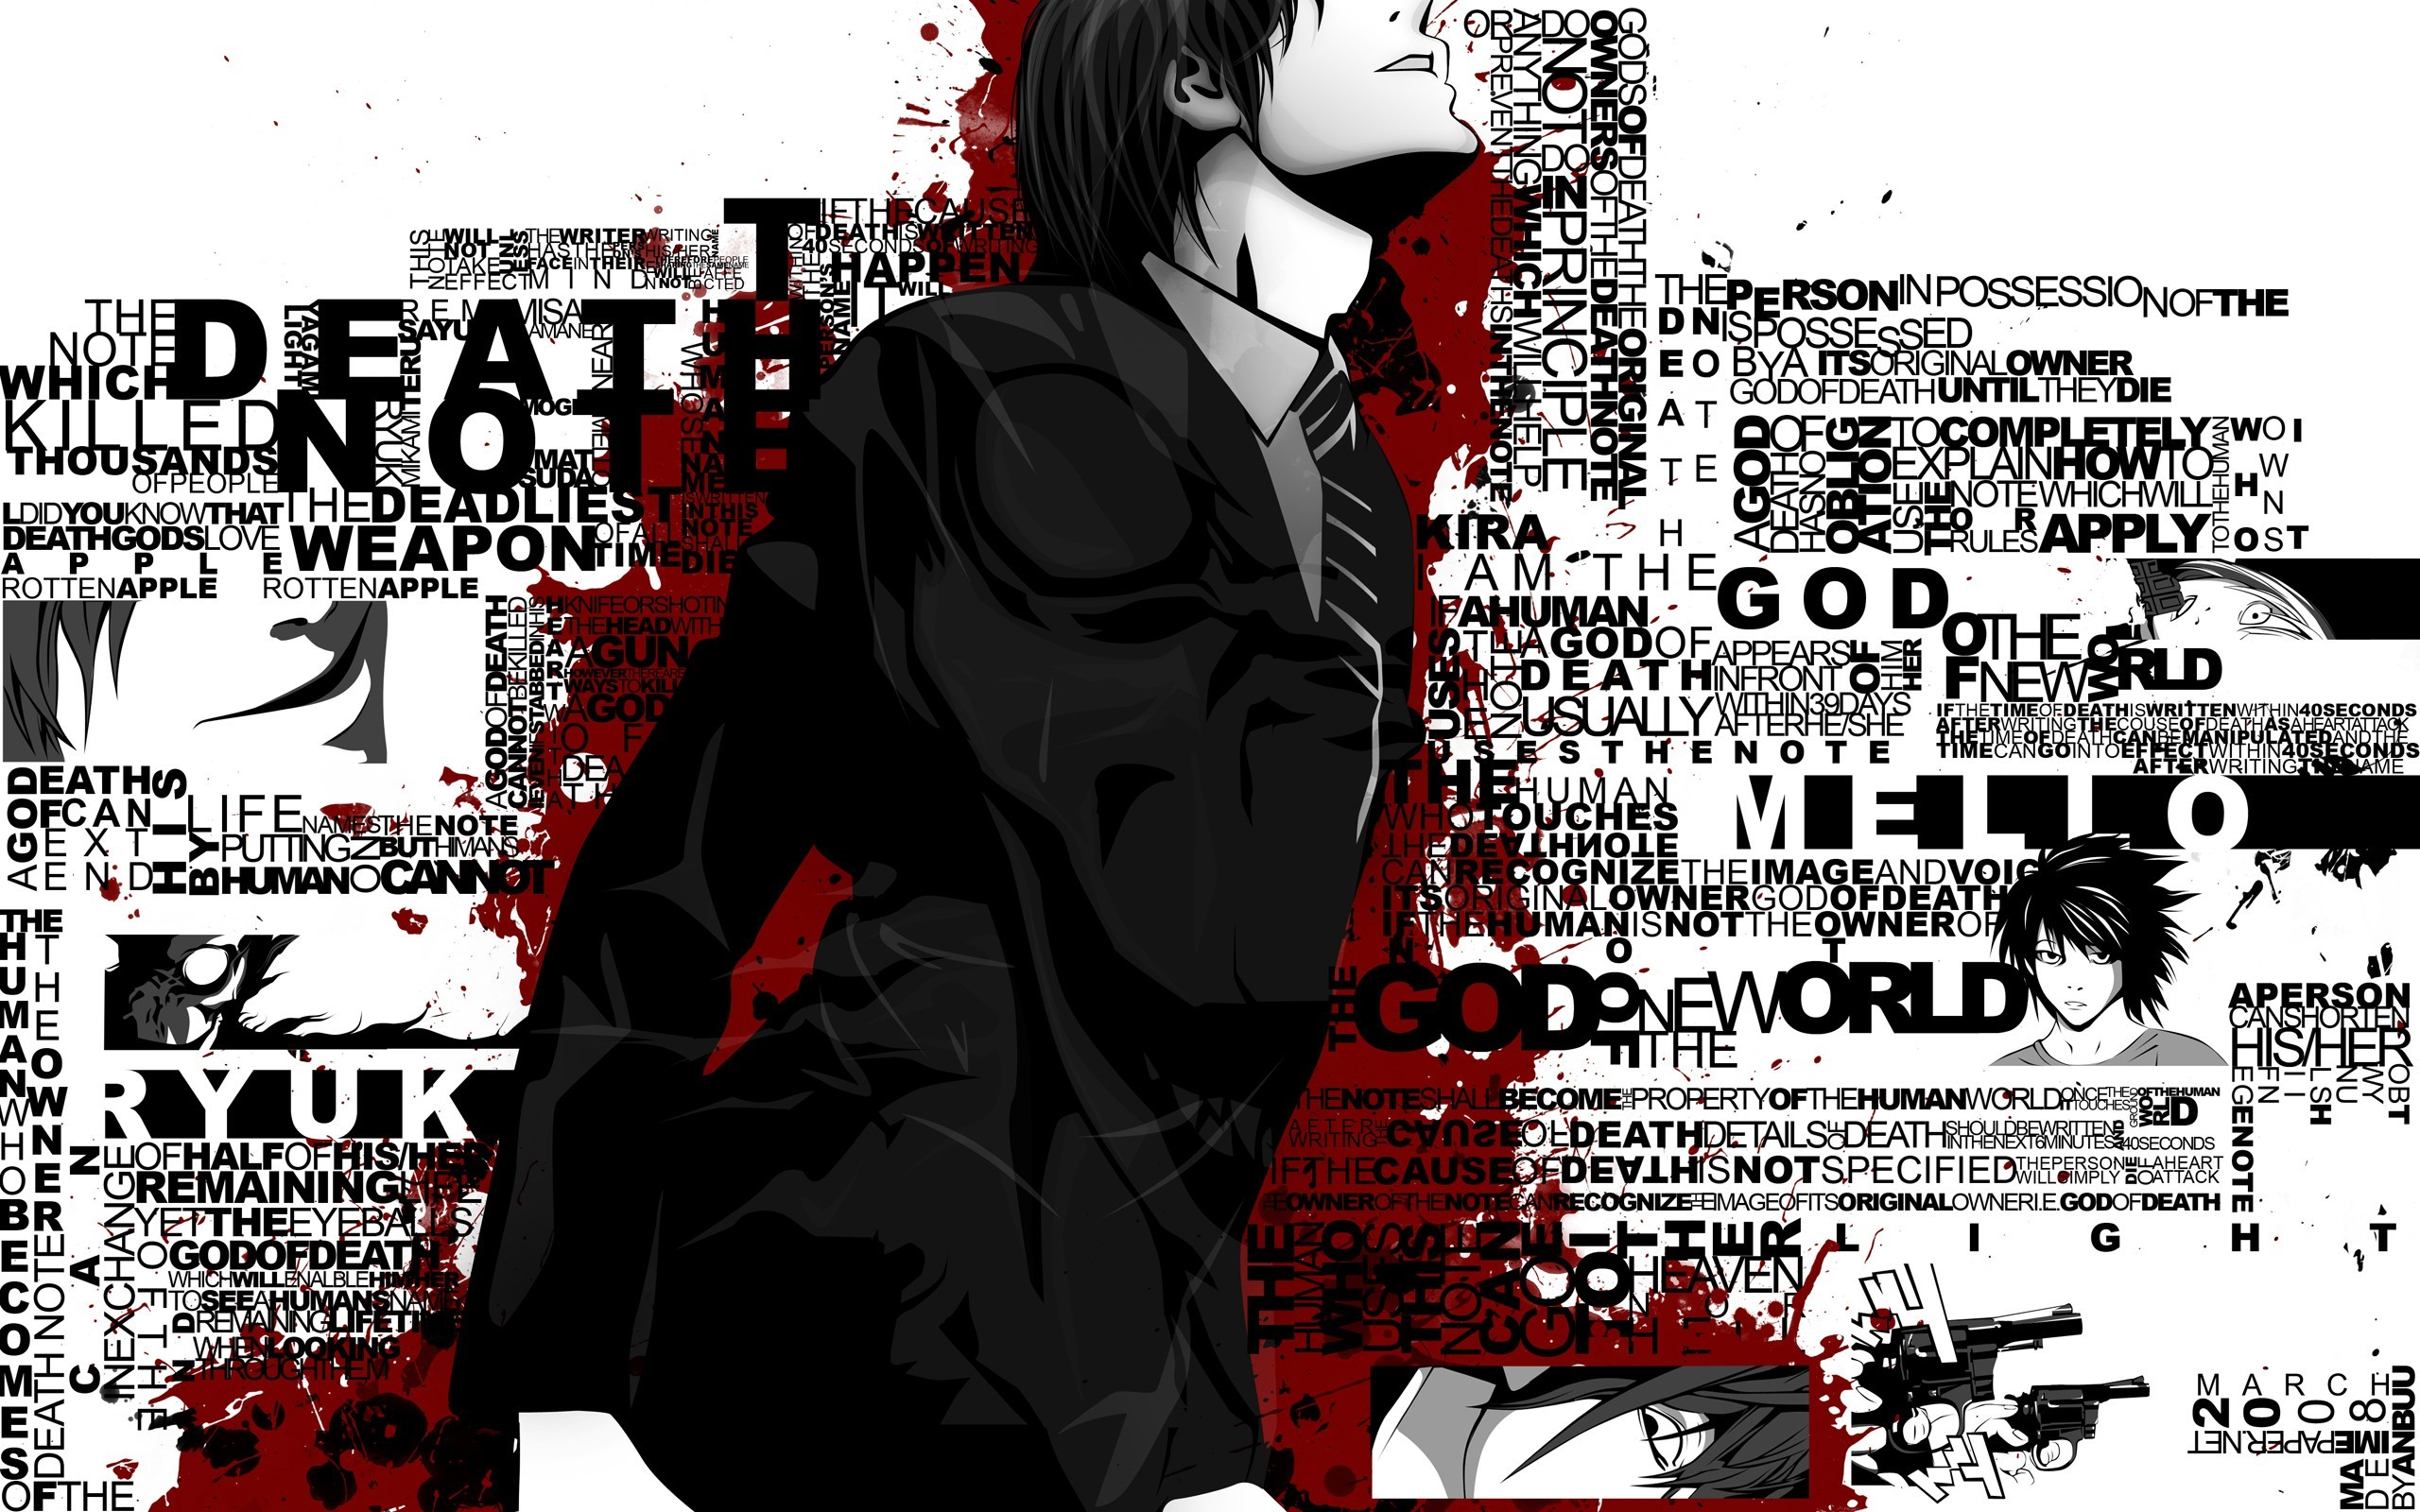 Fondos de pantalla Anime Light Yagami con letras - Death Note